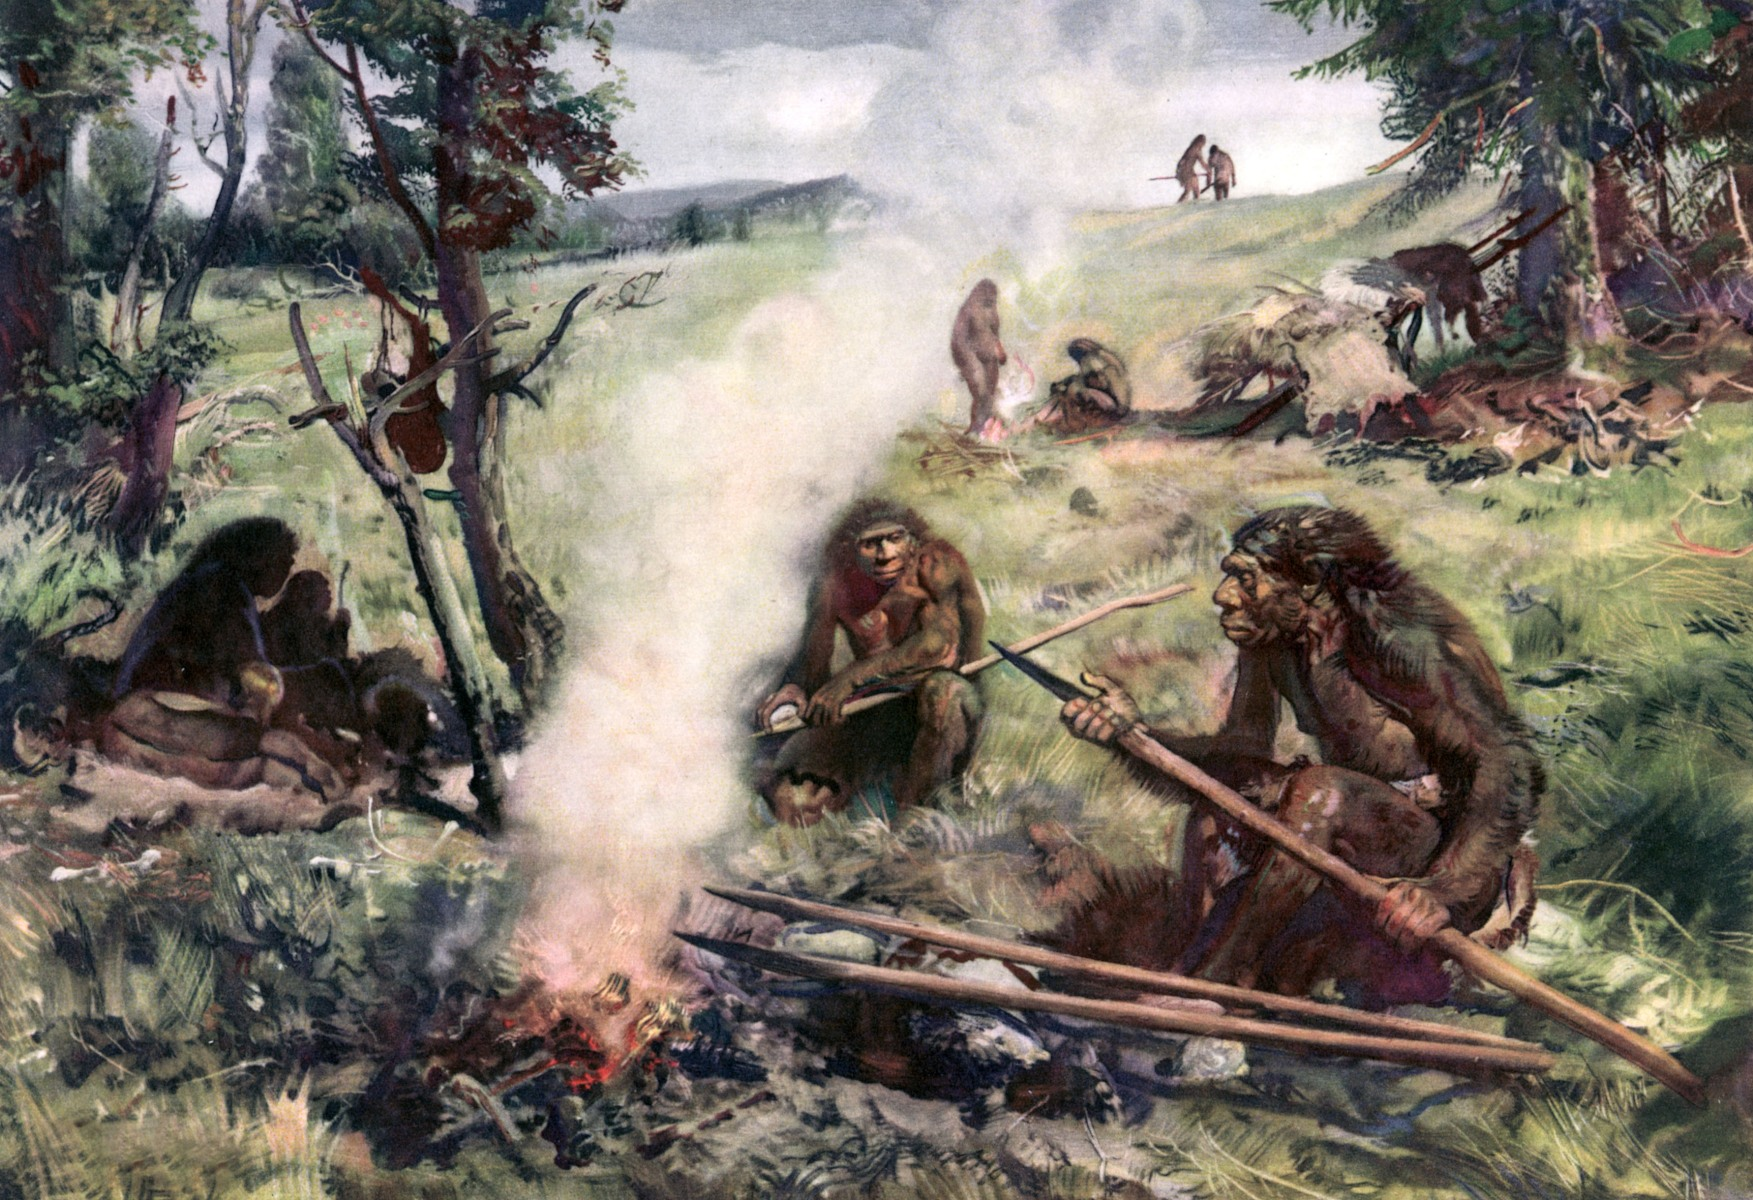 Illustration of Neanderthal man sitting around fire holding lance-like weapon; circa 30,000 BC.  (Photo by Time Life Pictures/Mansell/The LIFE Picture Collection/Getty Images)